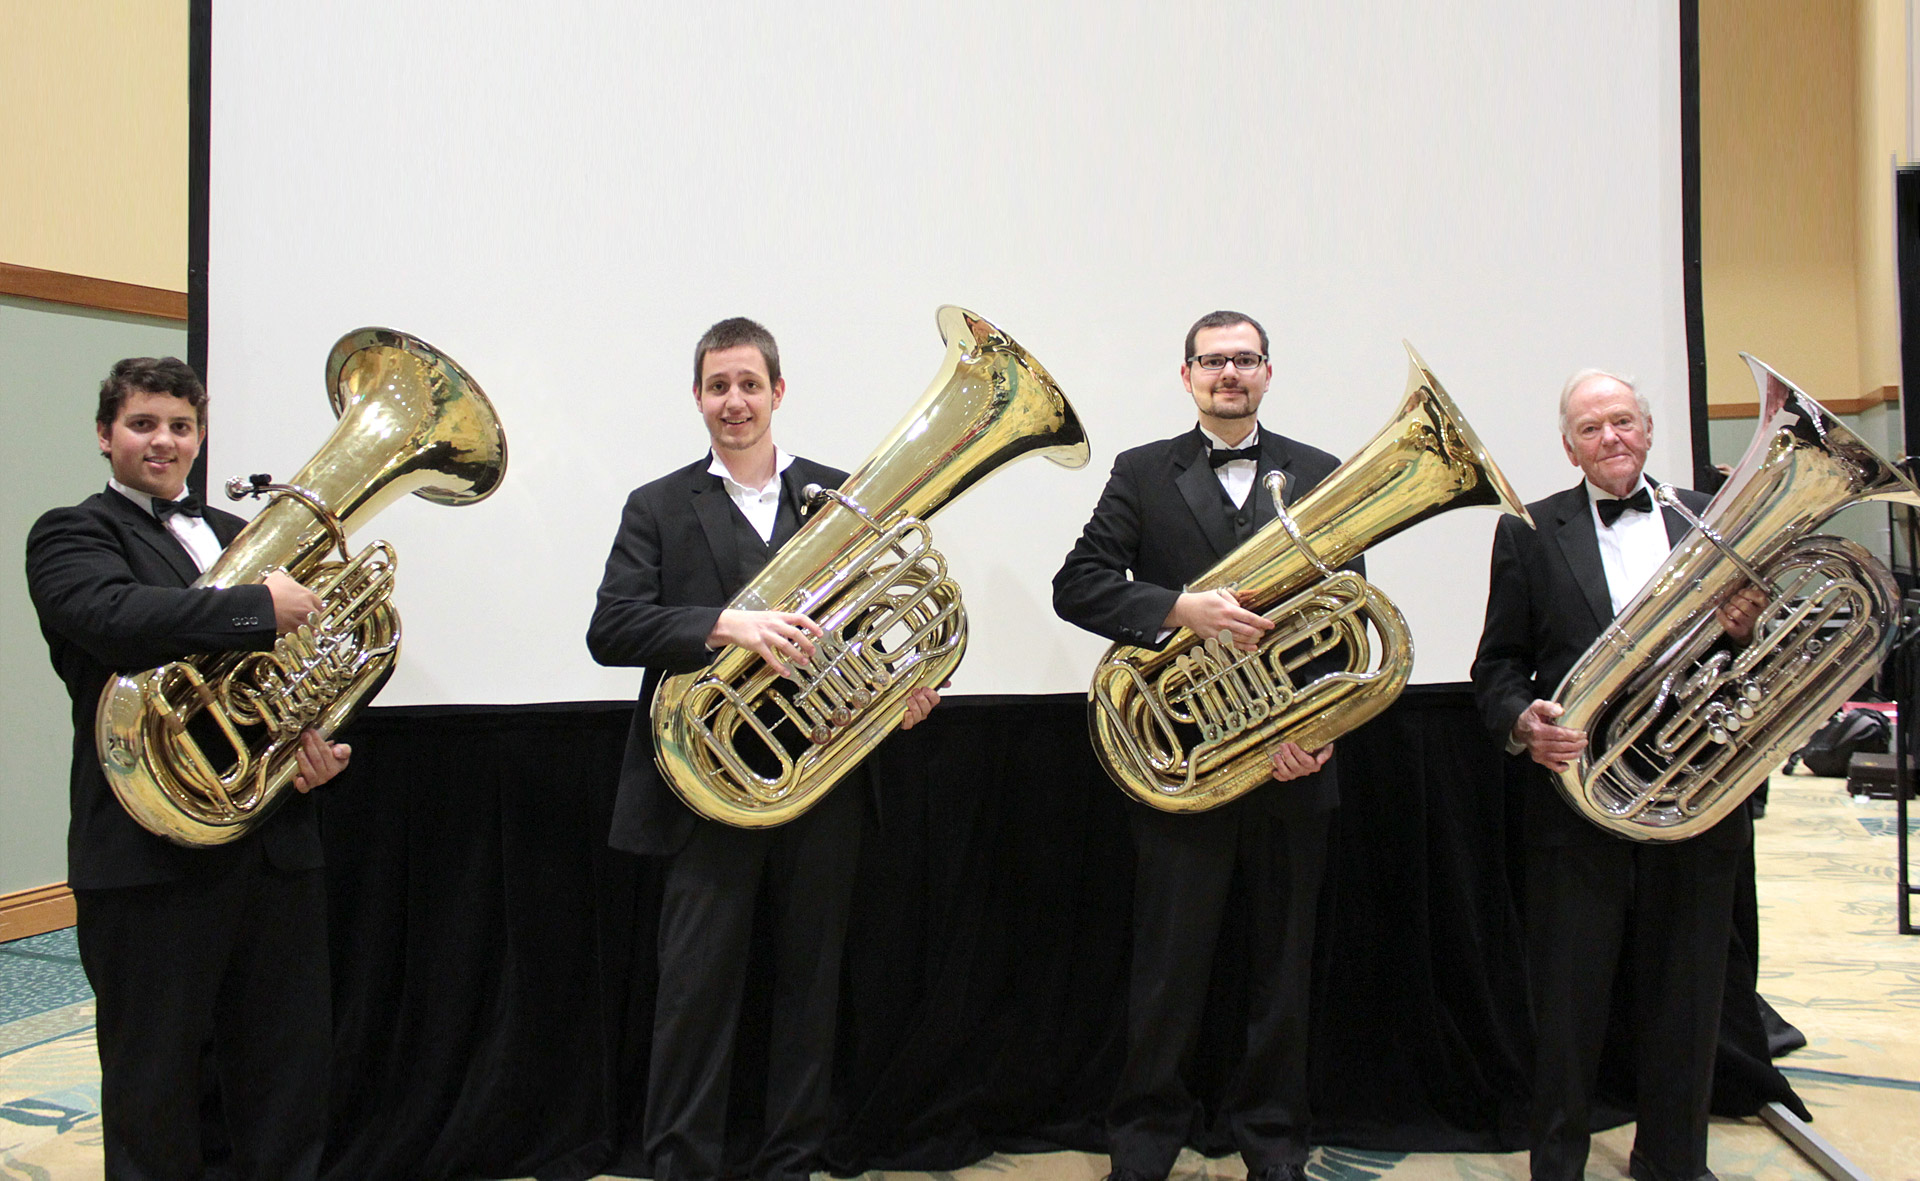 Members Of The Port St. Lucie Concert Band